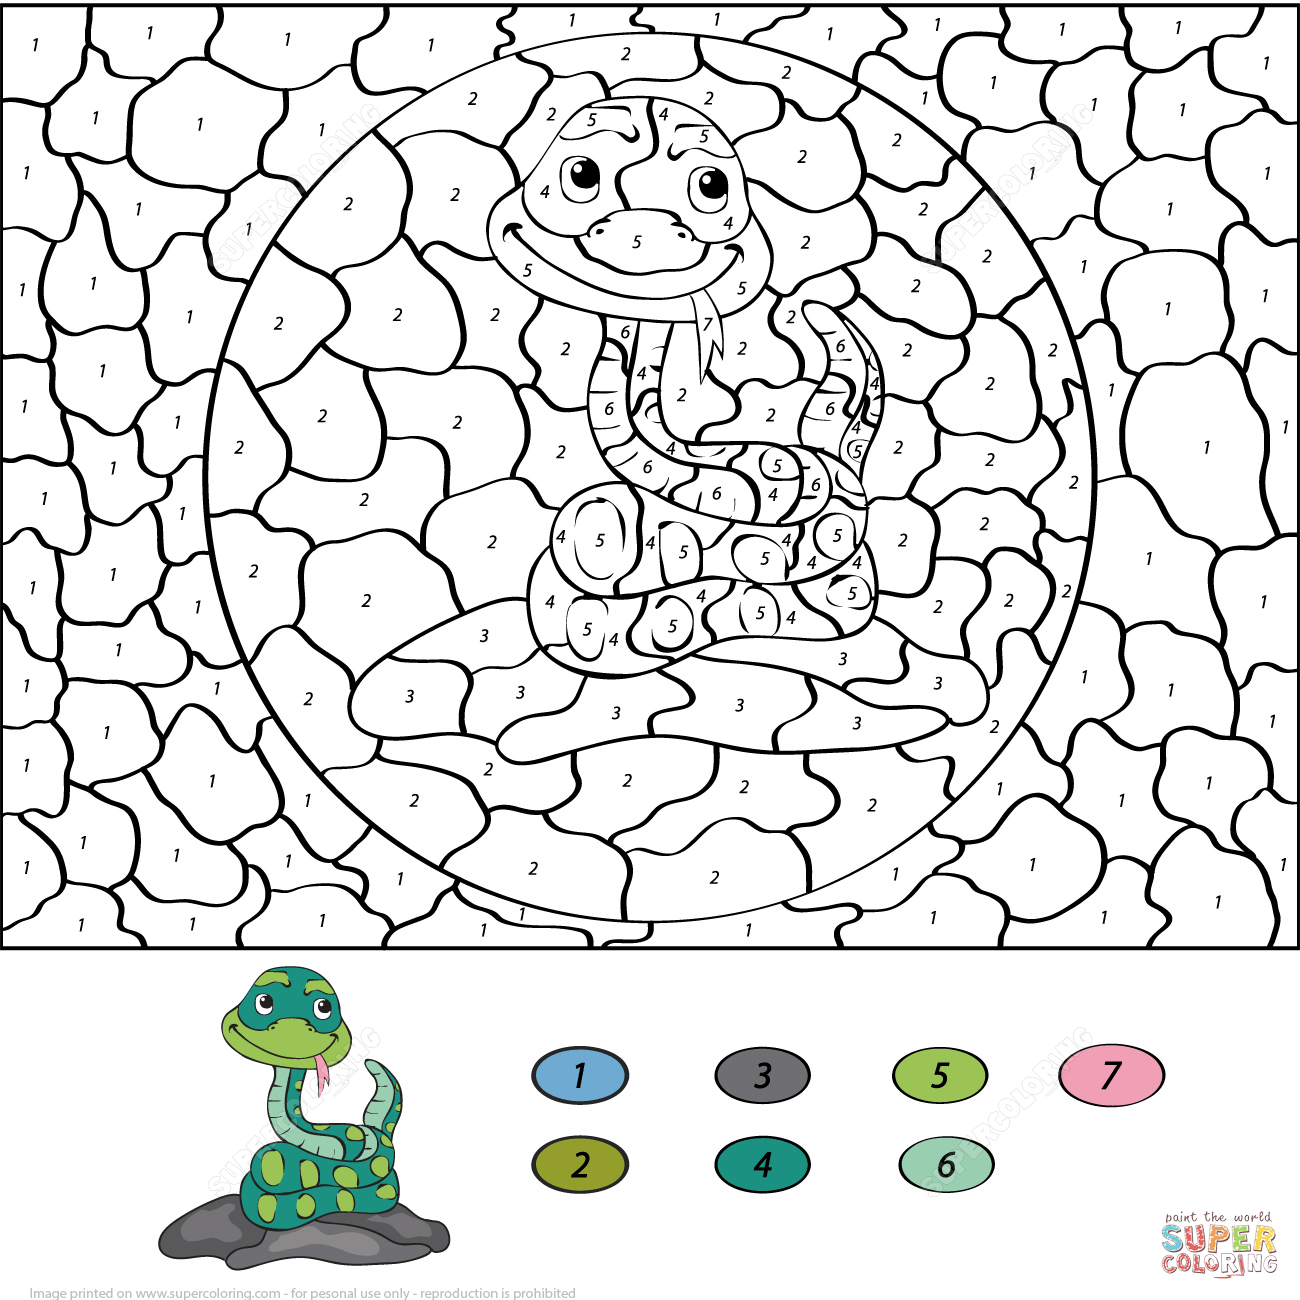 Snake Worksheets For Kids